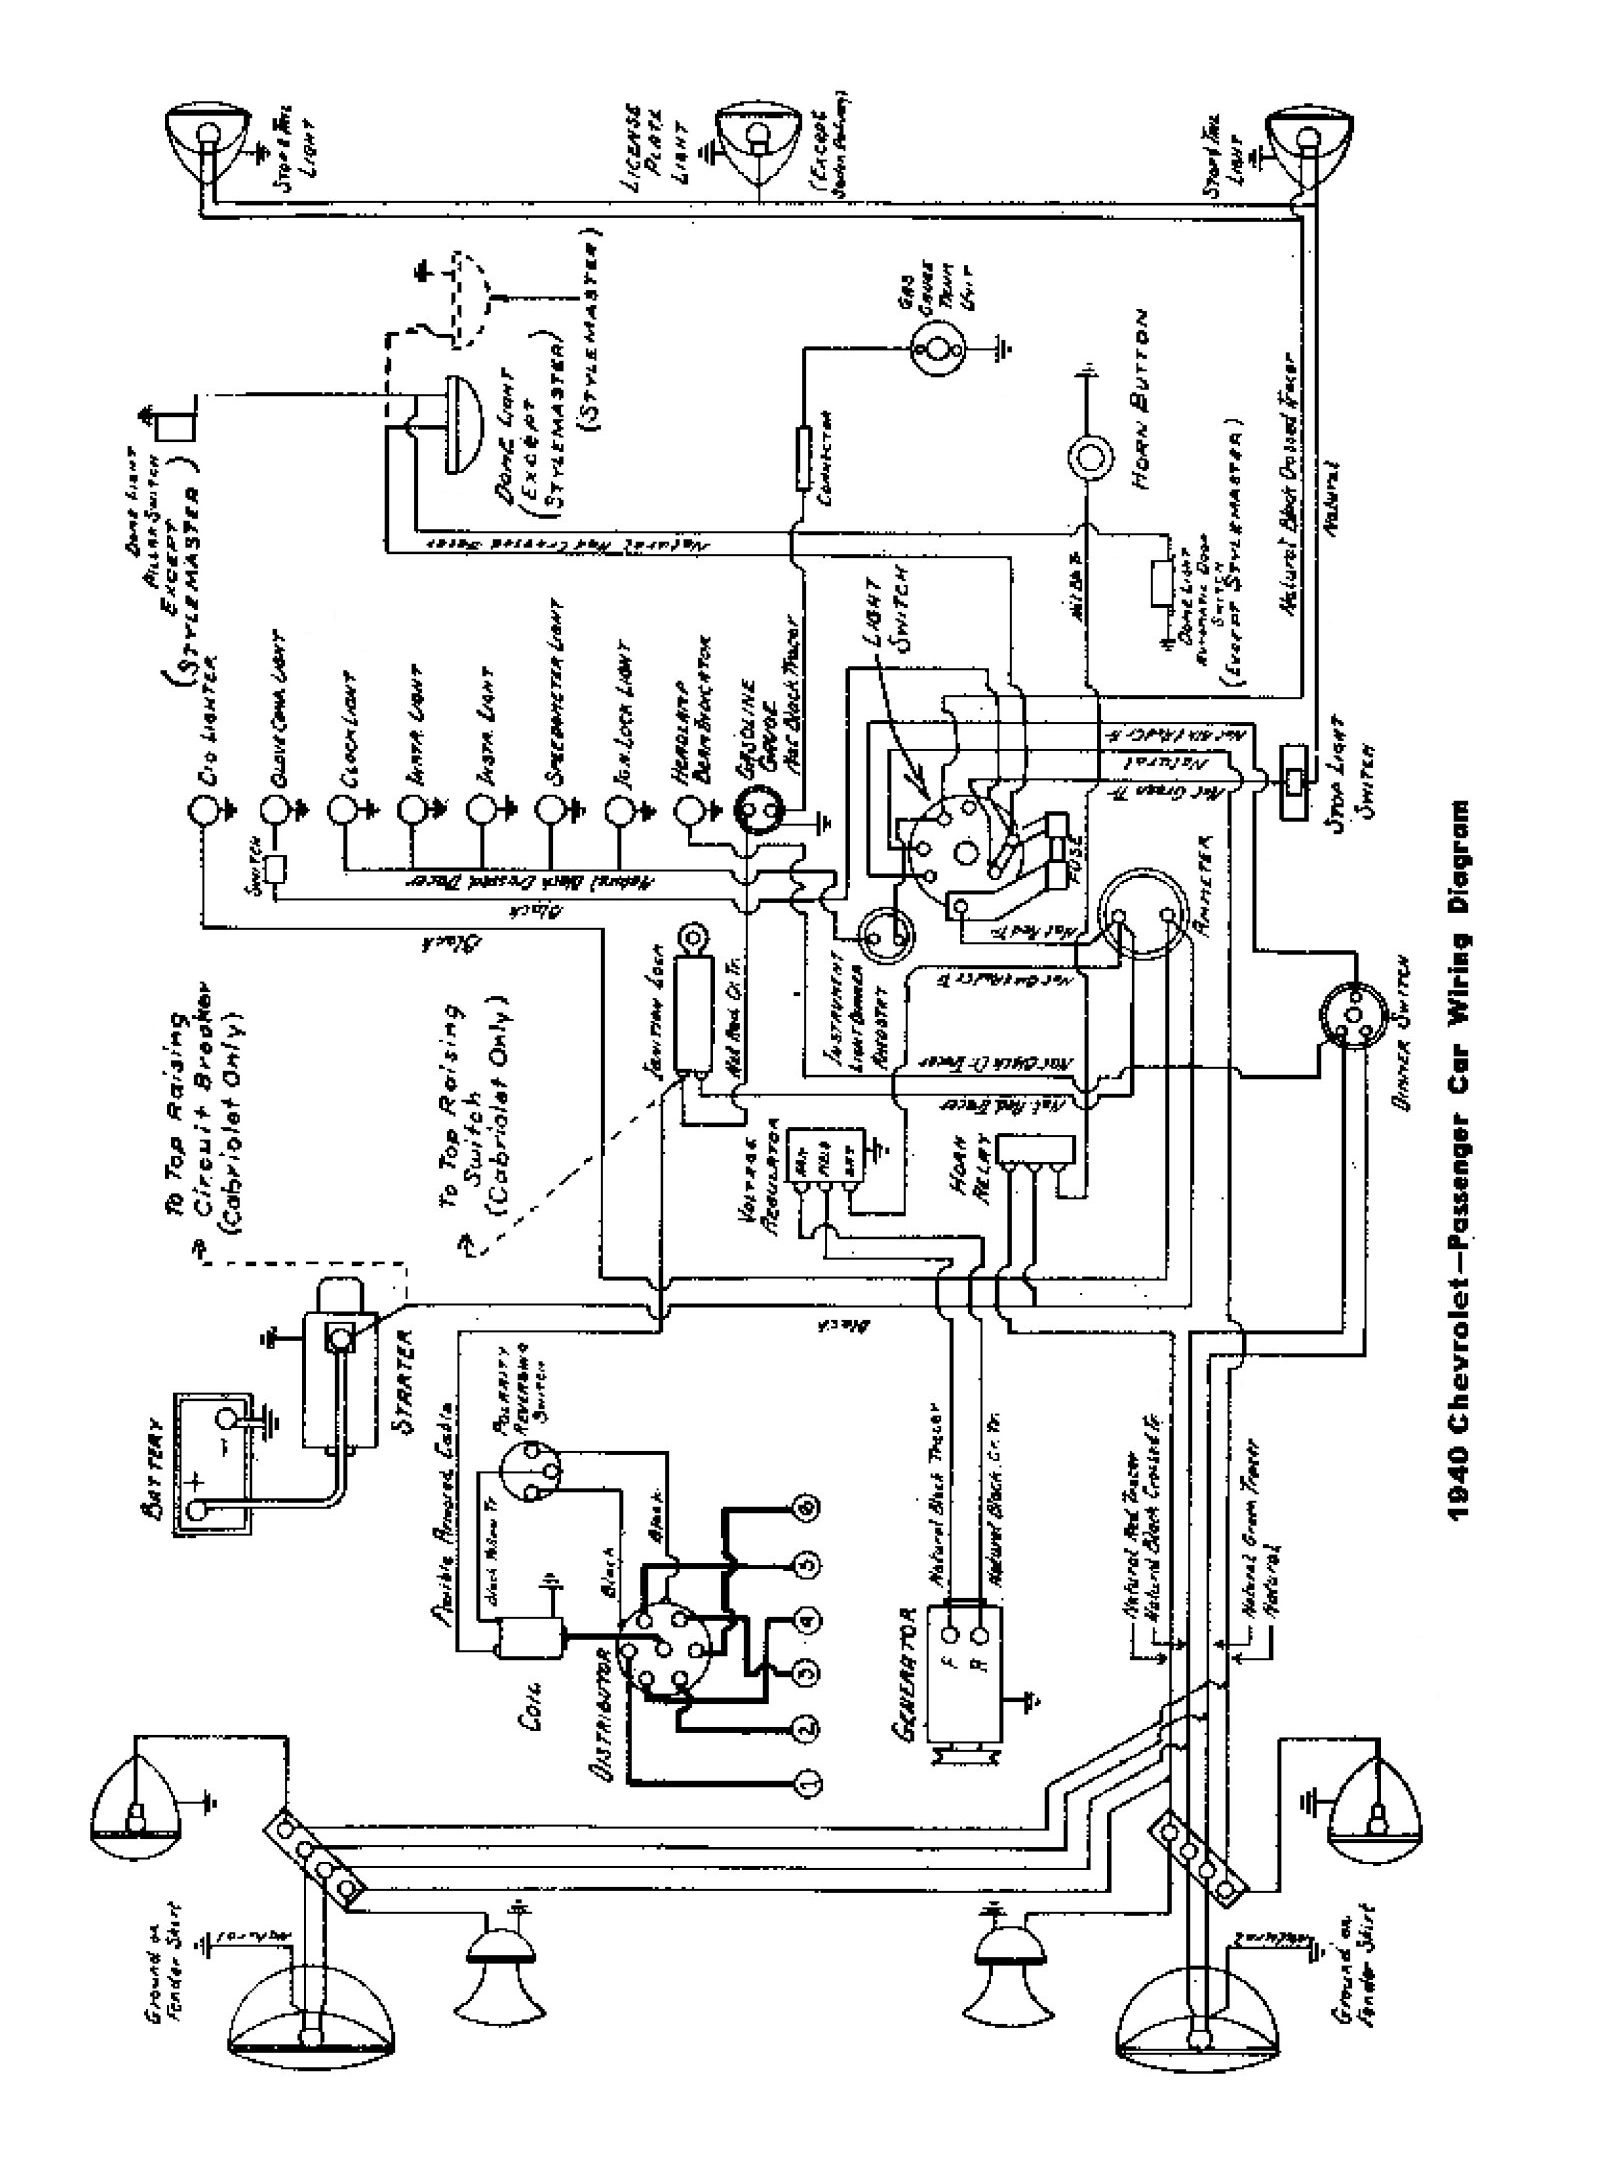 hight resolution of 1941 ford wiring schematic wiring diagram name1941 ford wiring schematic wiring diagram list 1941 ford headlight